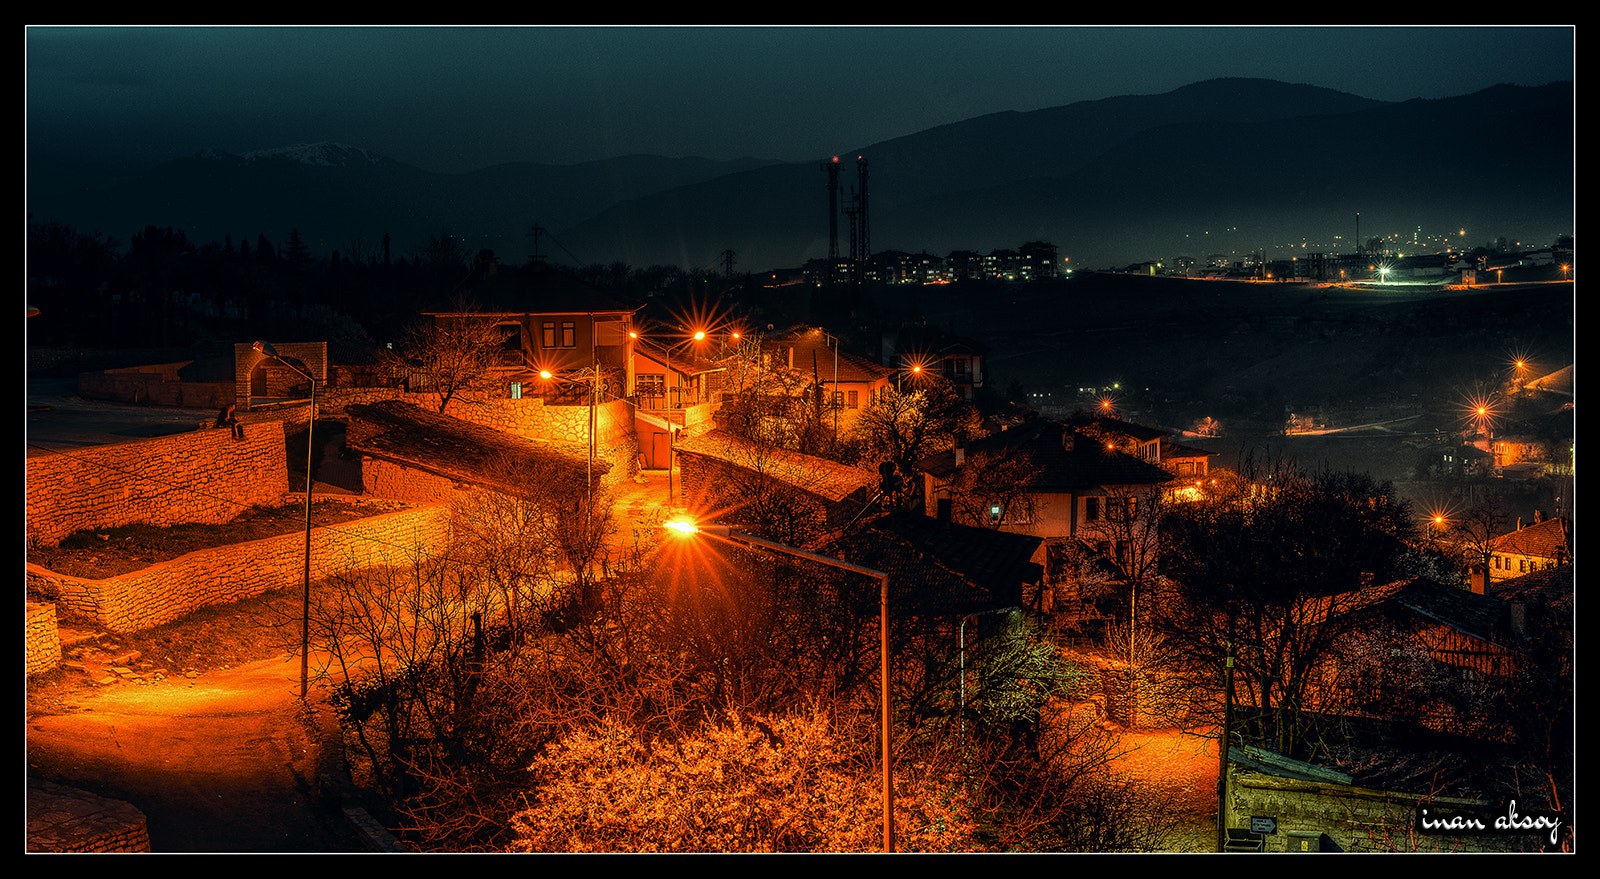 Photograph Safranbolu - An Old Ottoman Town by Inan Aksoy on 500px